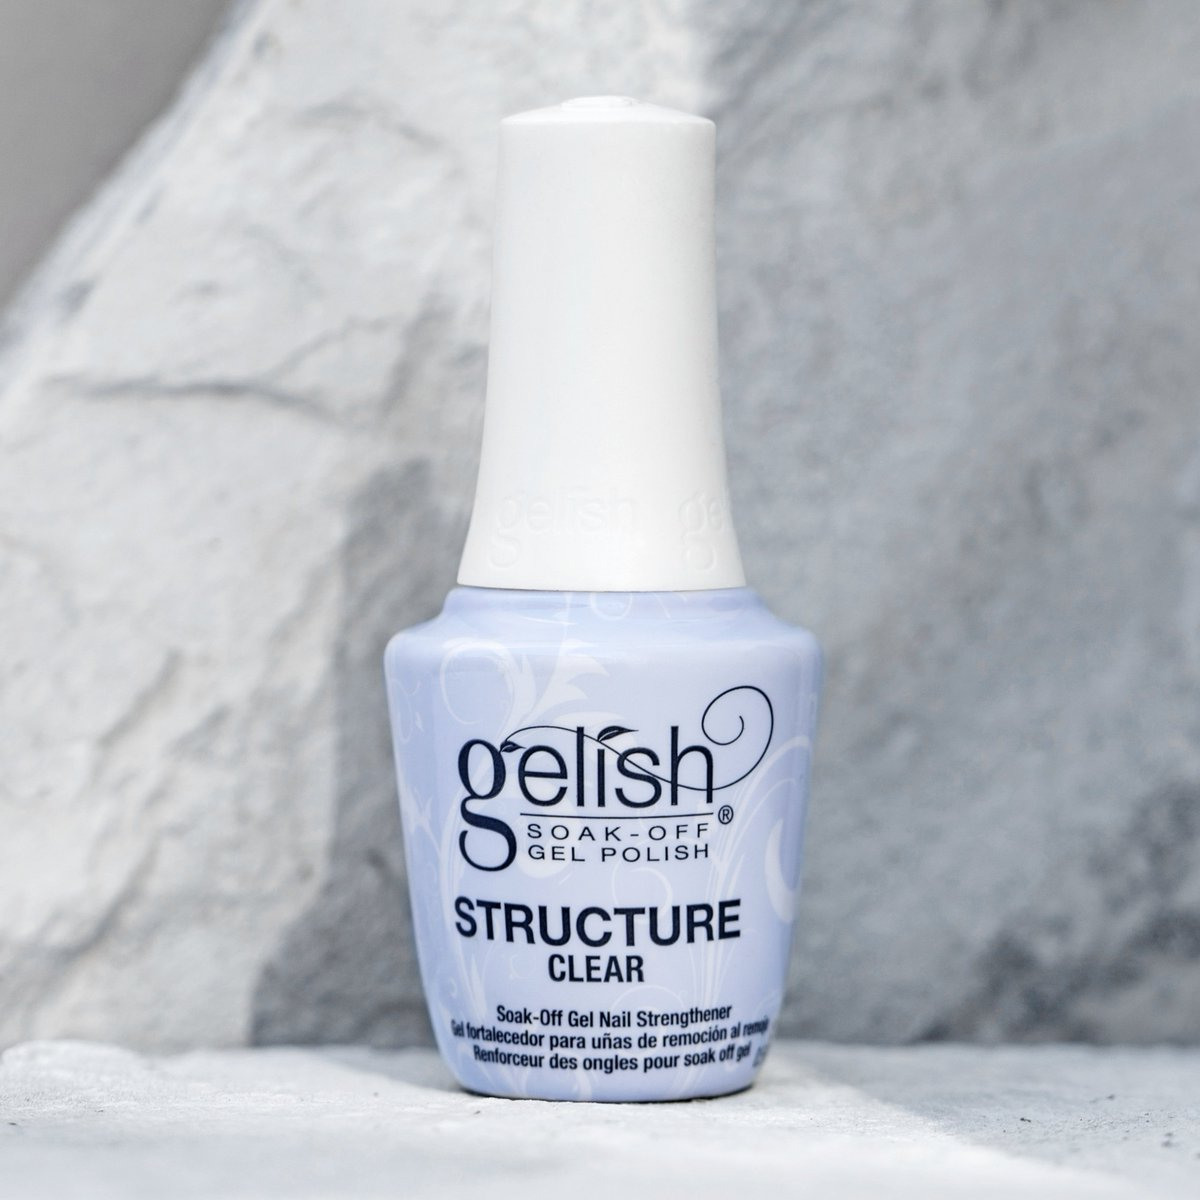 Have you been on the hunt for a product that will encapsulate nail art? Give Gelish Brush On Structure Gel a try – it'll be your new go to!